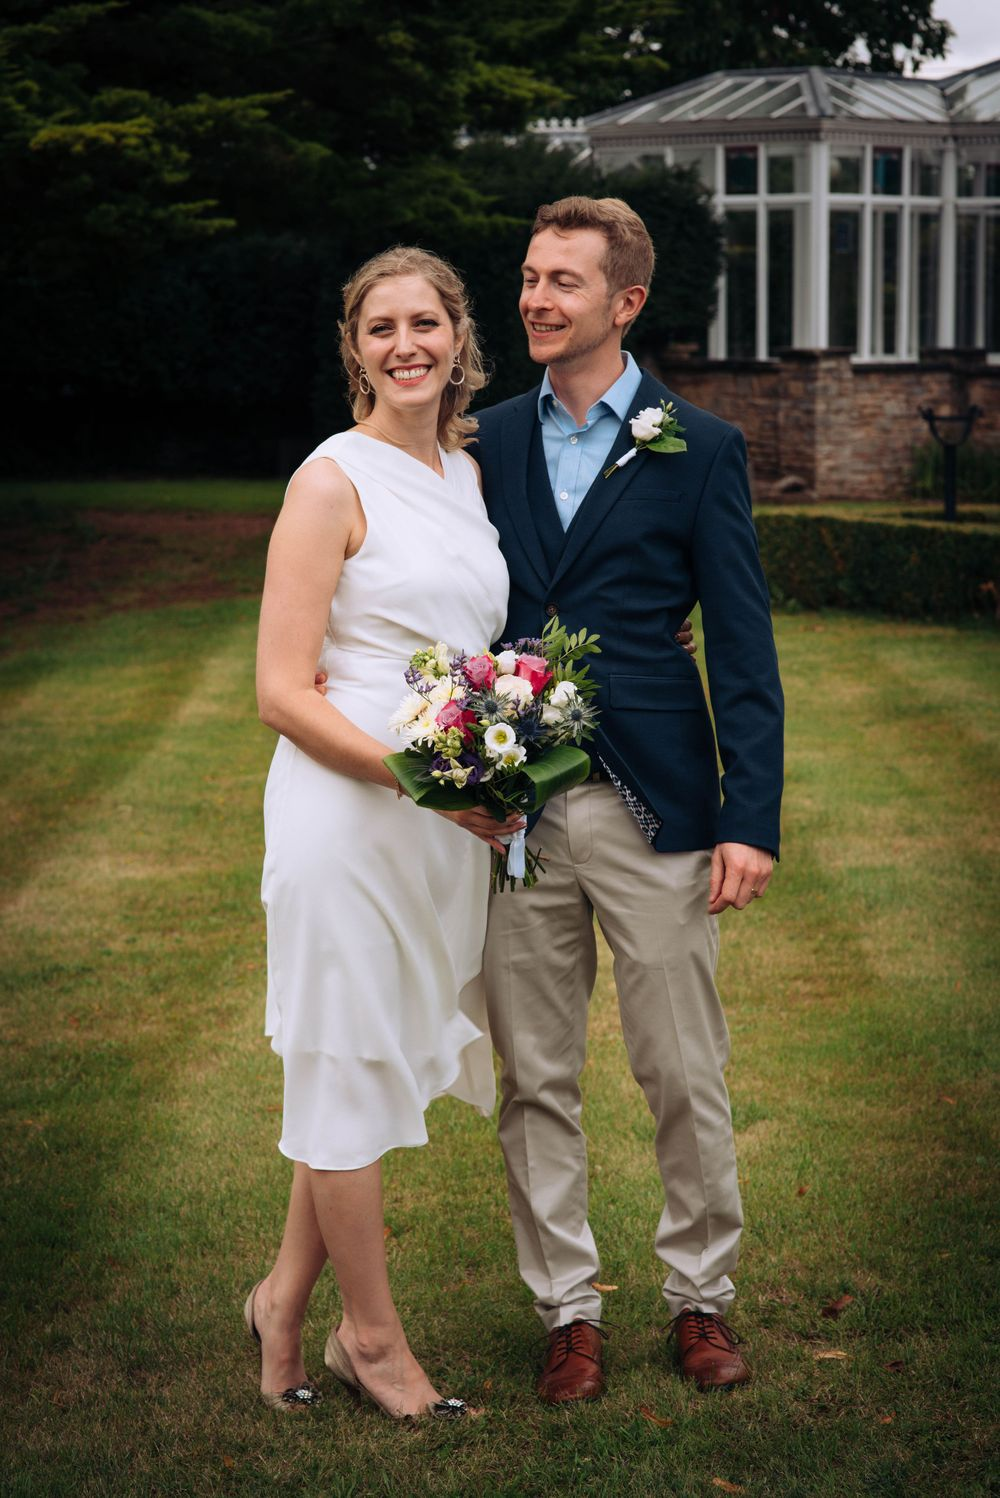 Pukrup Hall wedding by Zara Davis Photography, Gloucestershire outside bride and groom